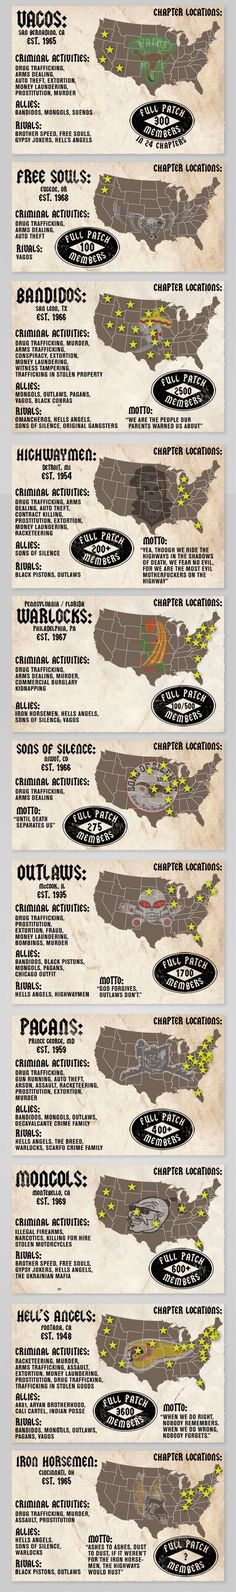 Biker Gangs of America Best Infographics